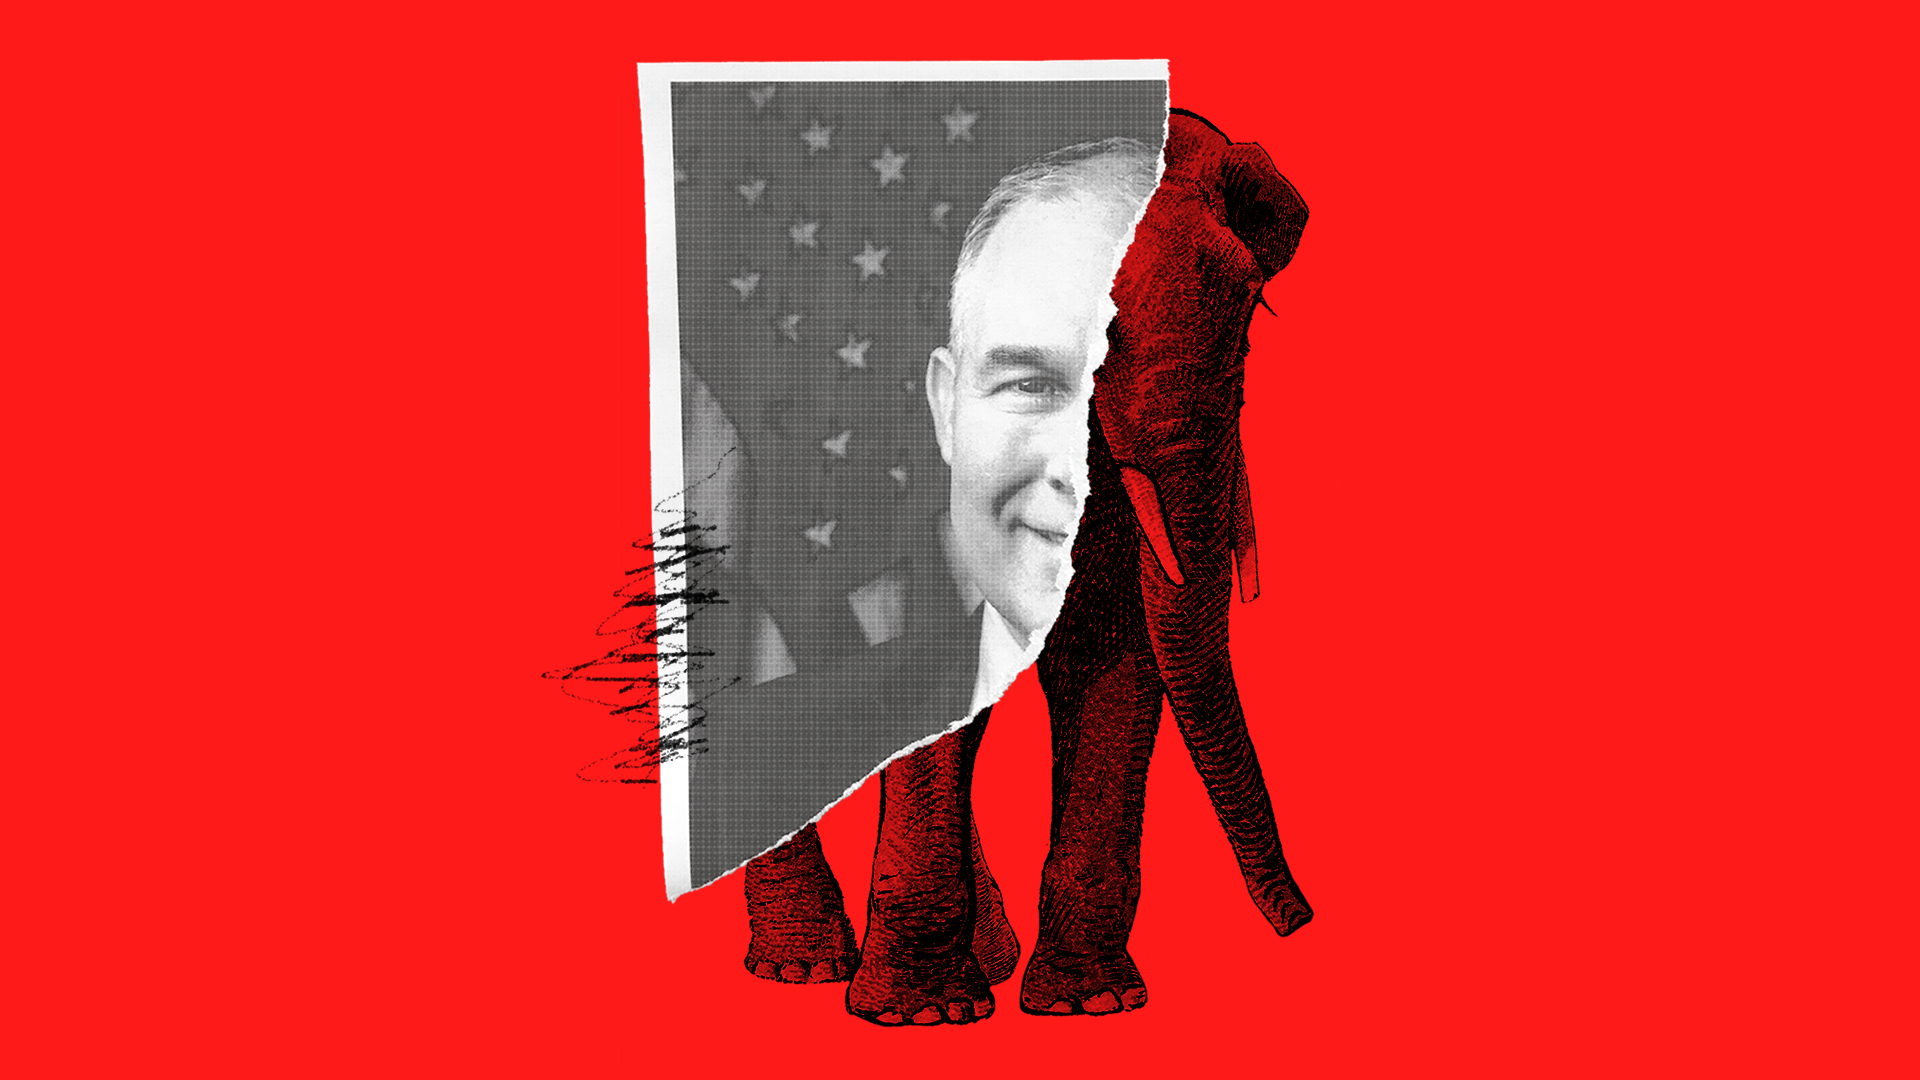 A ripped picture of Scott Pruitt with a Republican elephant peeking out behind it